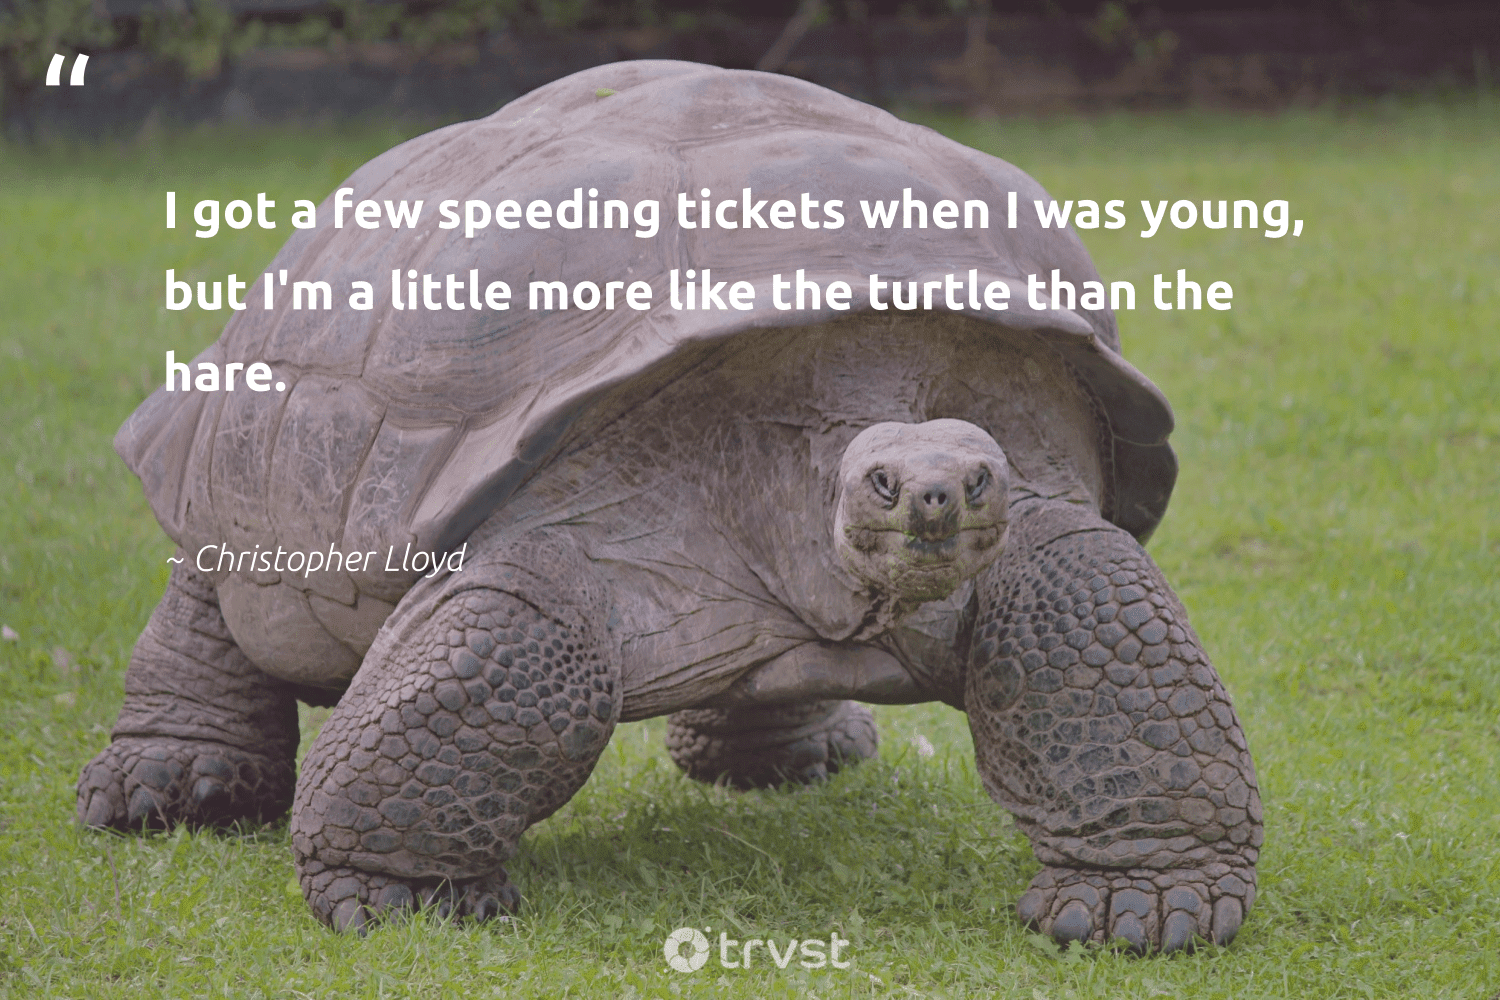 """I got a few speeding tickets when I was young, but I'm a little more like the turtle than the hare.""  - Christopher Lloyd #trvst #quotes #turtle #perfectnature #impact #sustainability #gogreen #protectnature #changetheworld #aquaticlife #planetearthfirst #oceans"